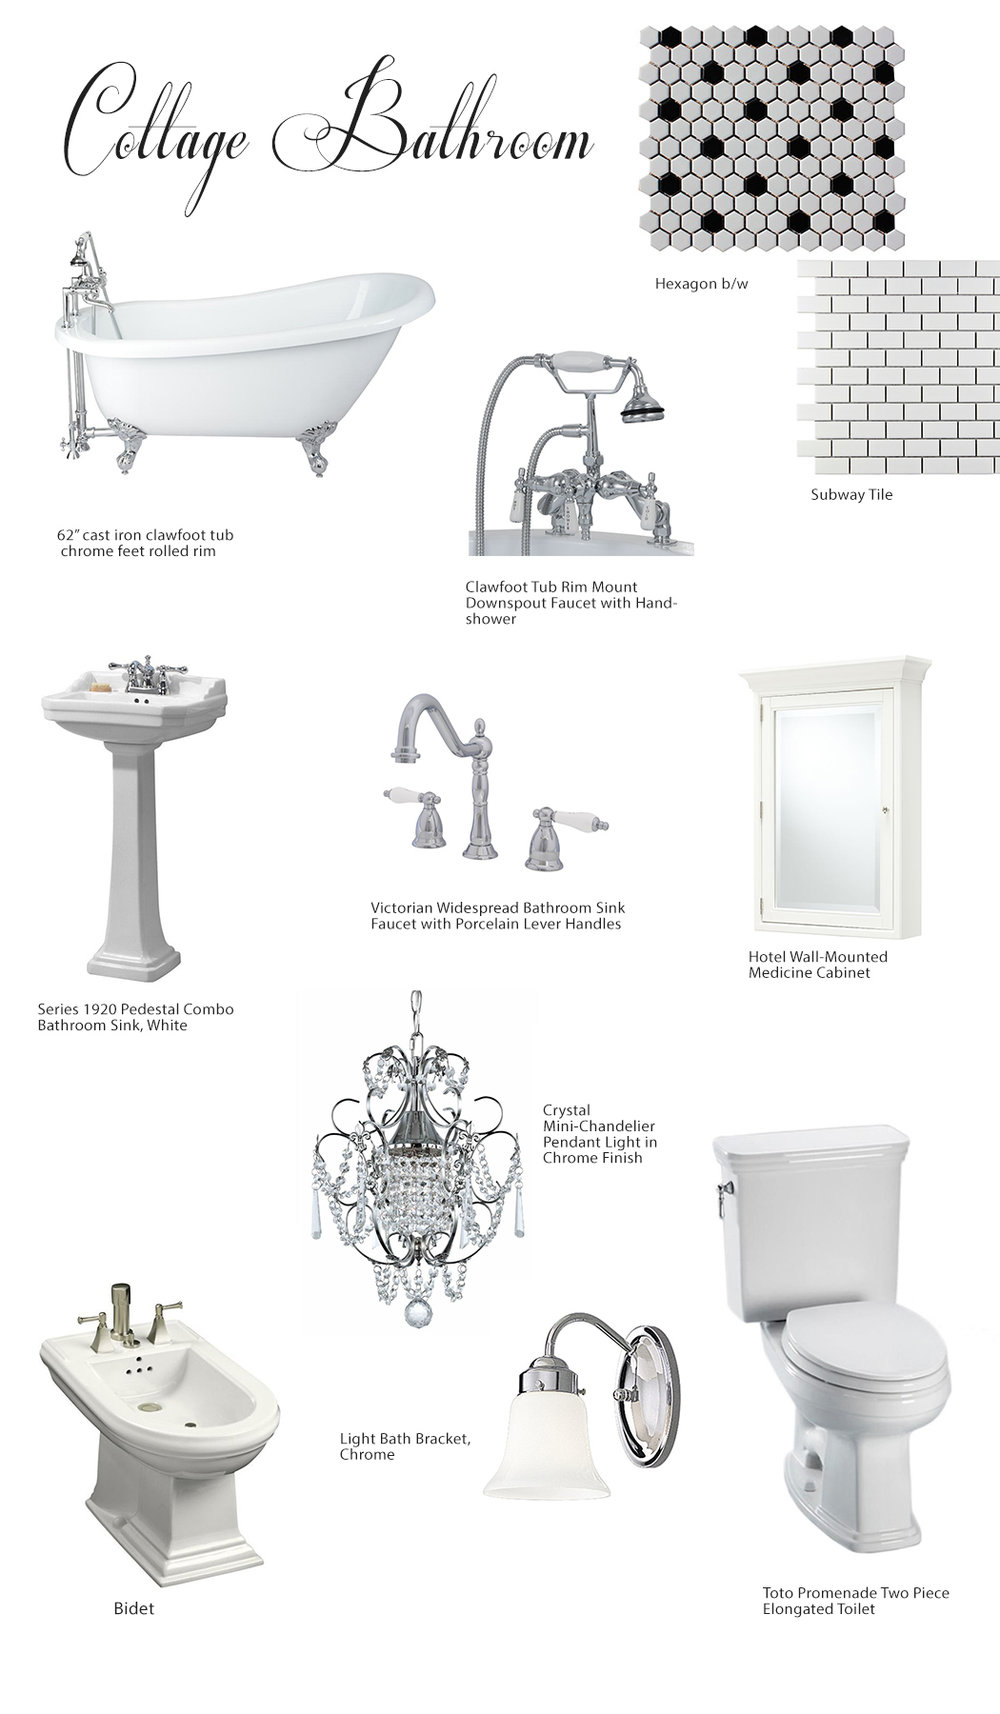 cottage-bathroom-remodeling-renovation-design-board-vintage-cast-iron-tub-clawfoot-bidet-pedestal-sink-subwaytile-hexagon-tile-faucet-hand-shower-moodboard-305floridacontractors.jpg